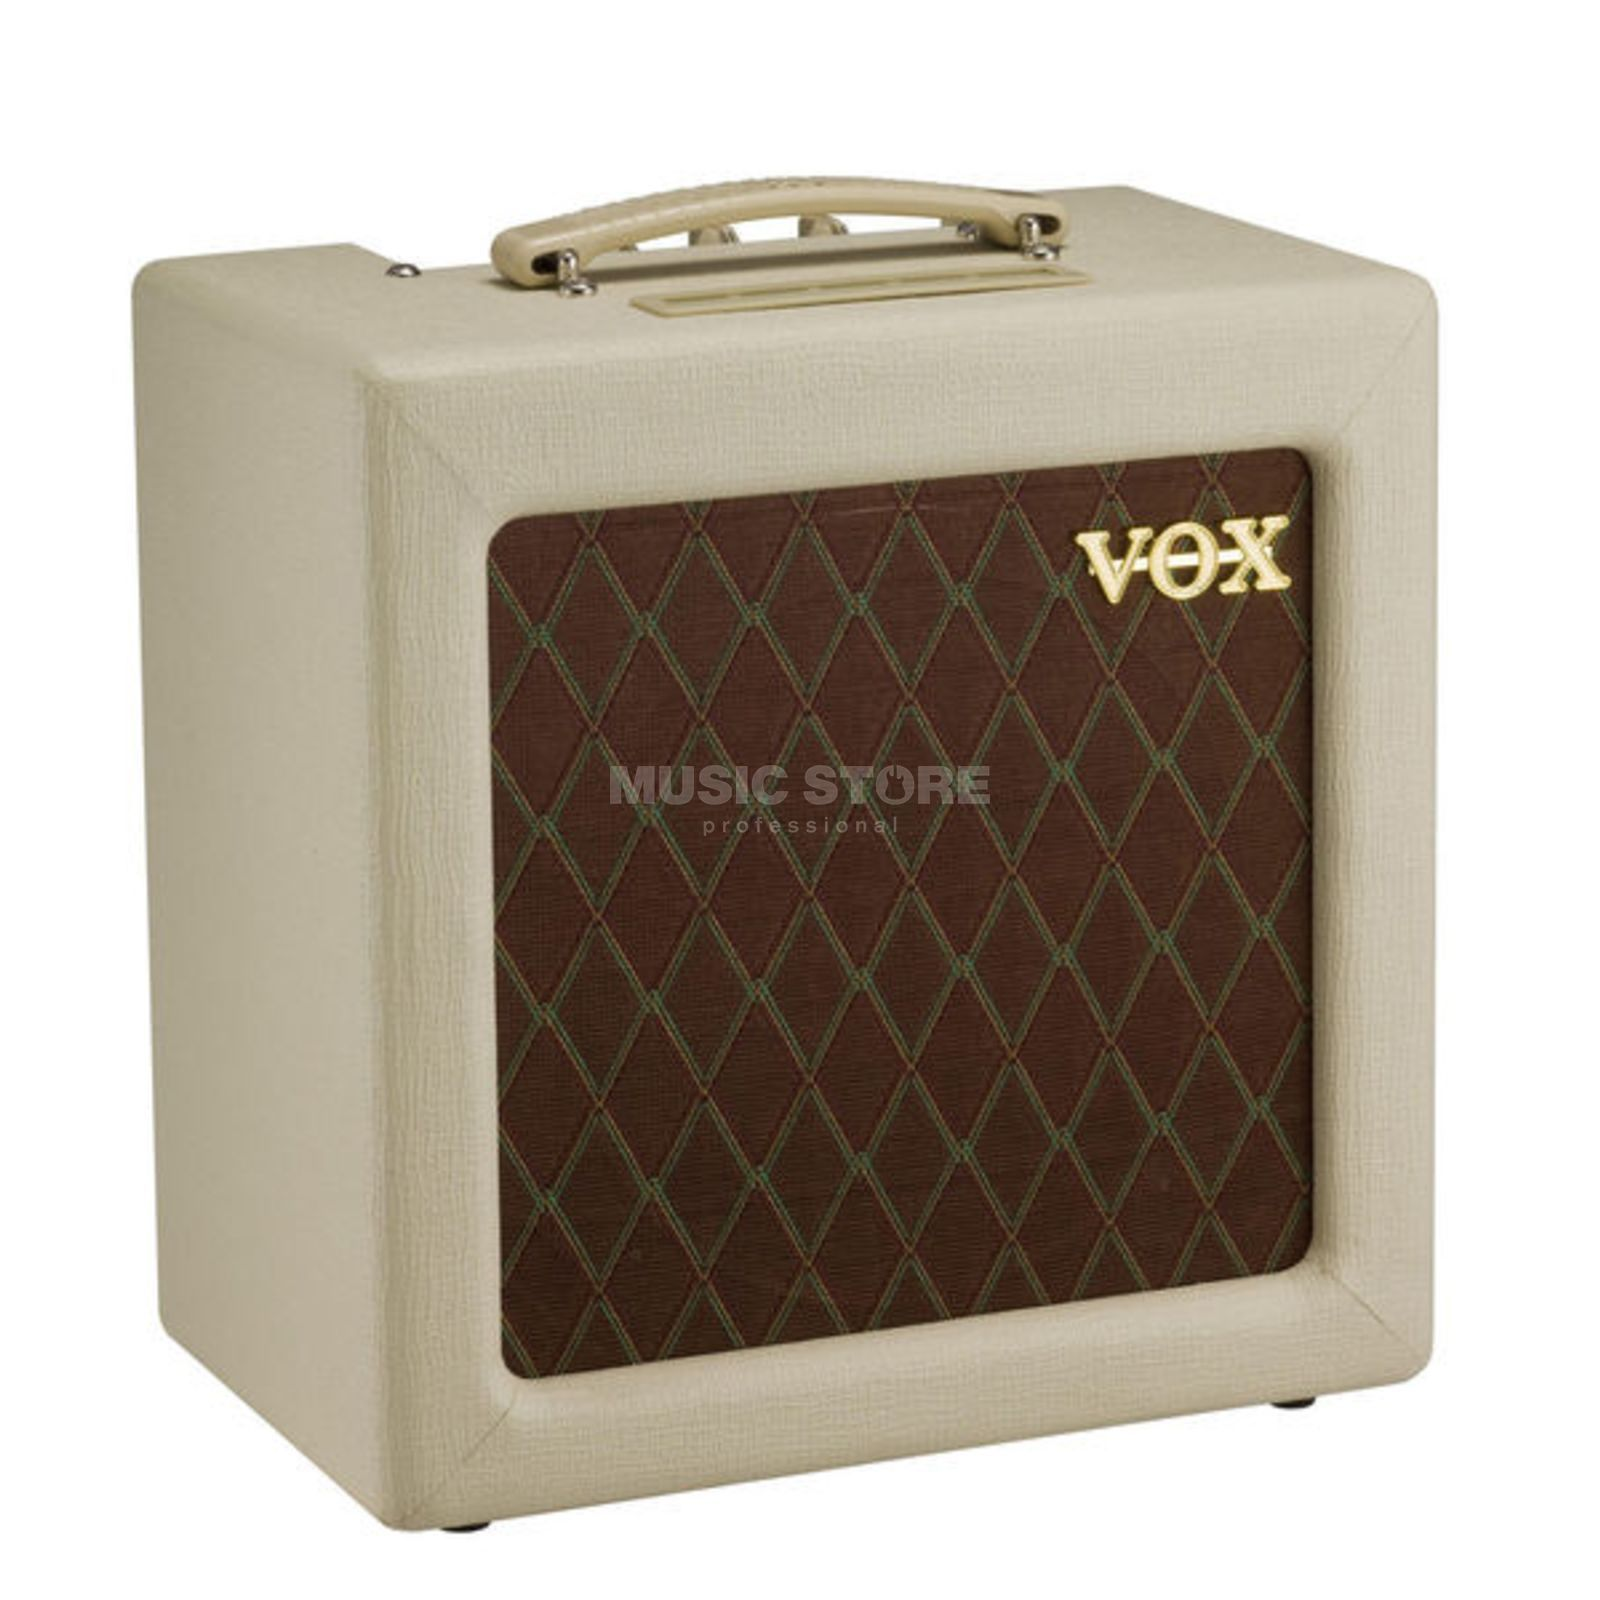 Get the guaranteed best price on Tube Combo Guitar Amplifiers like the Vox AC4TV 4W 1x10 Tube Guitar Combo Amp at Musicians Friend Get a low price and free shipping on thousands of items